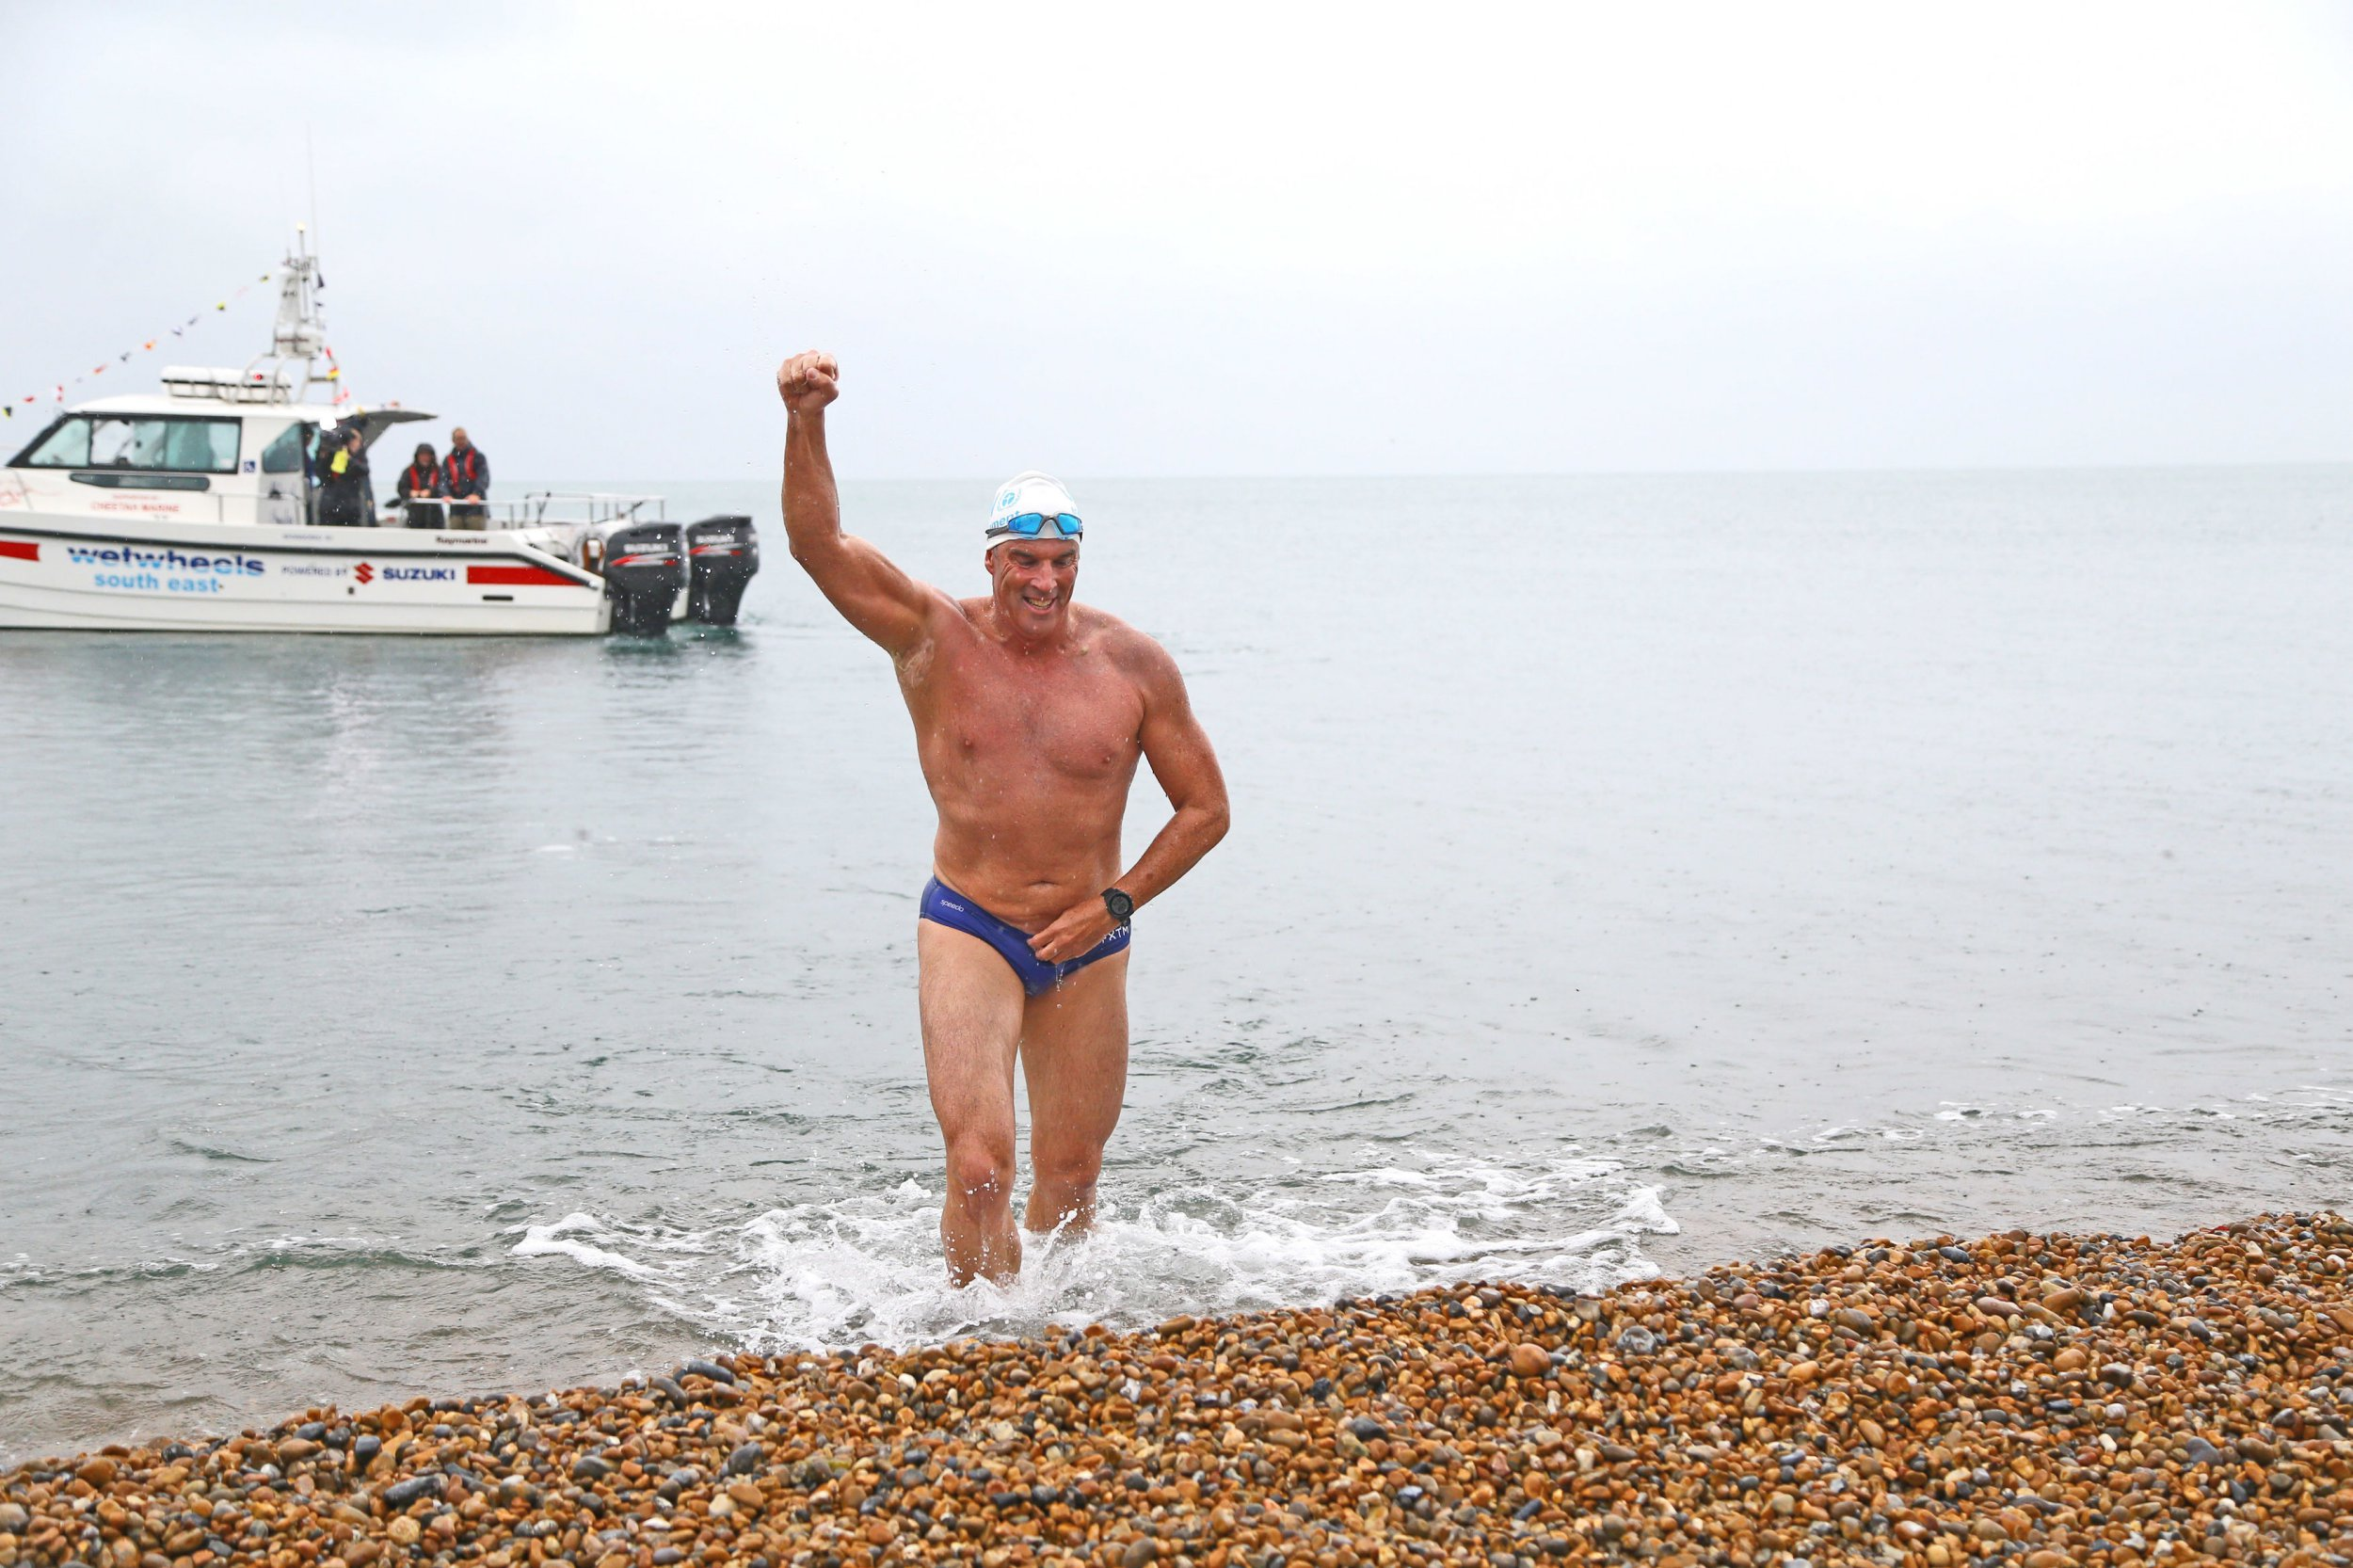 Endurance swimmer completes English Channel challenge to highlight ocean pollution